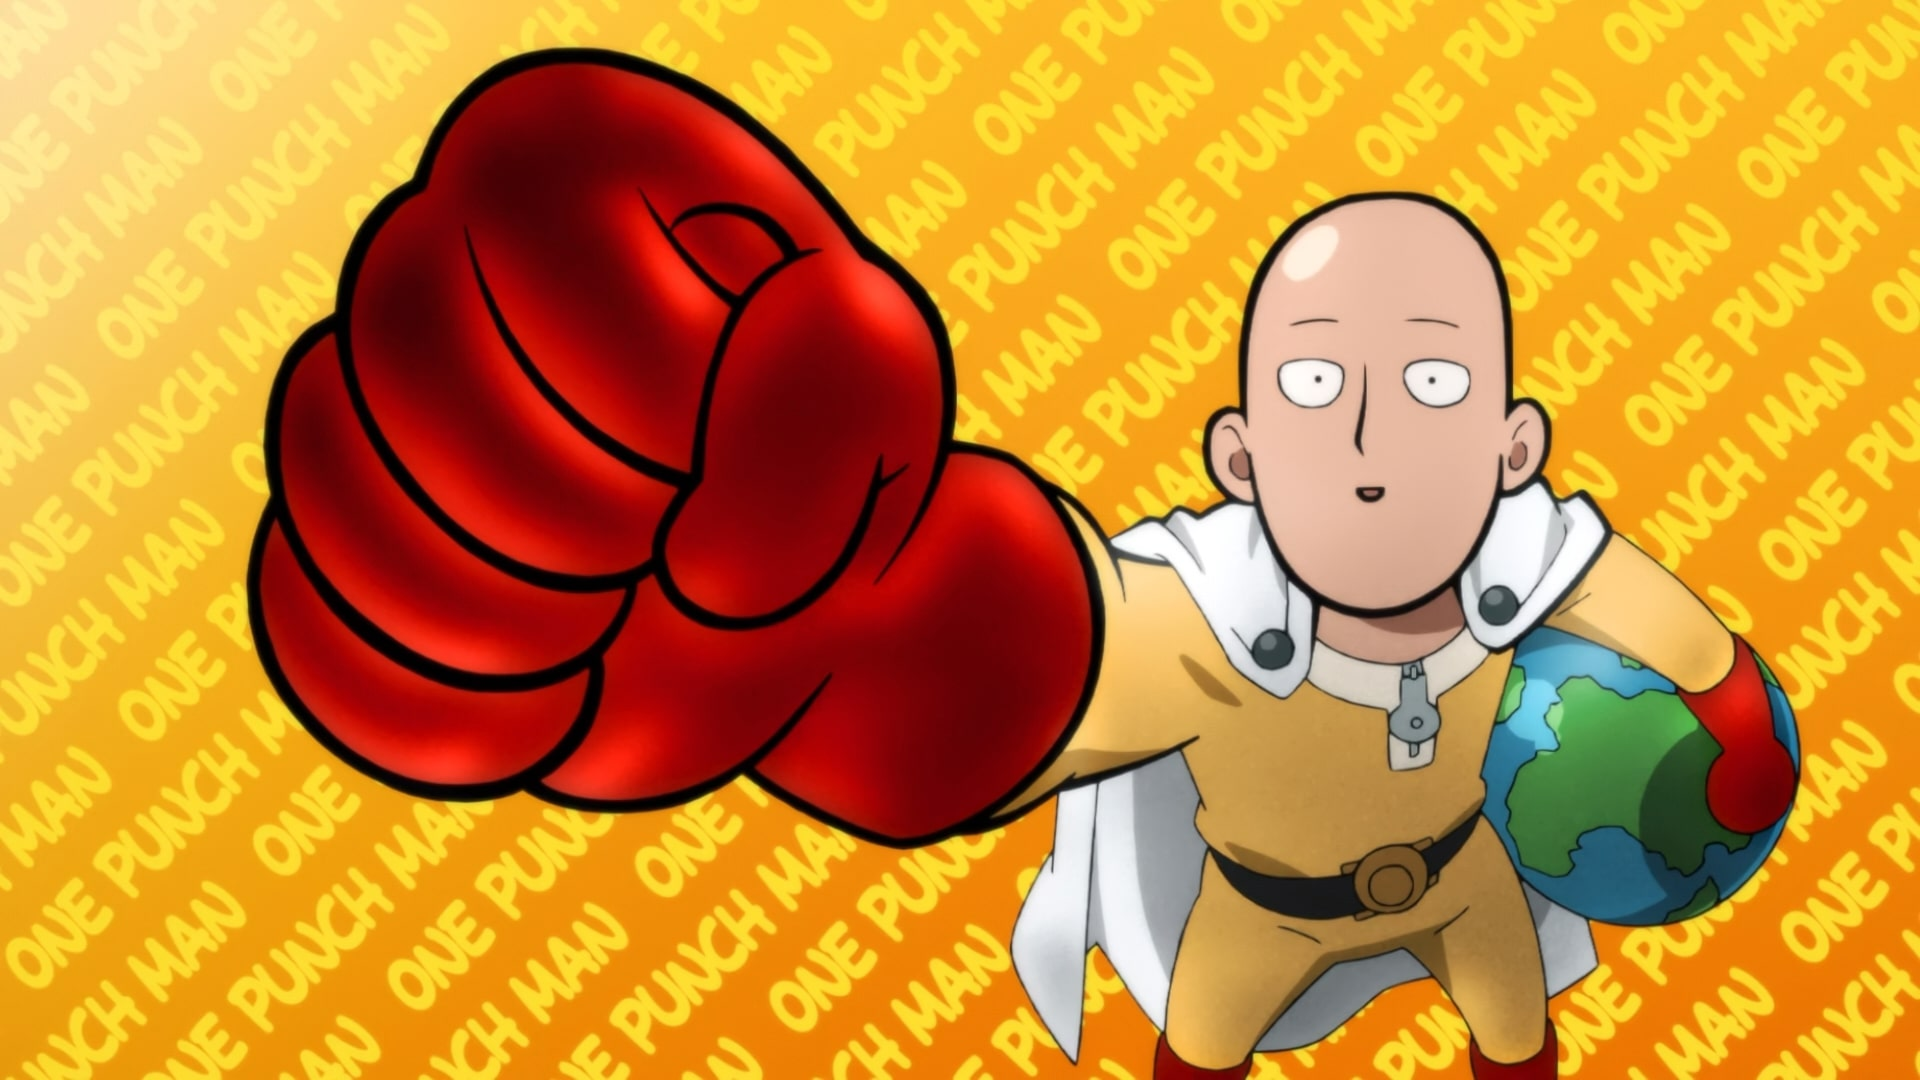 E Punch Man Wallpaper Hd Posted By Samantha Sellers